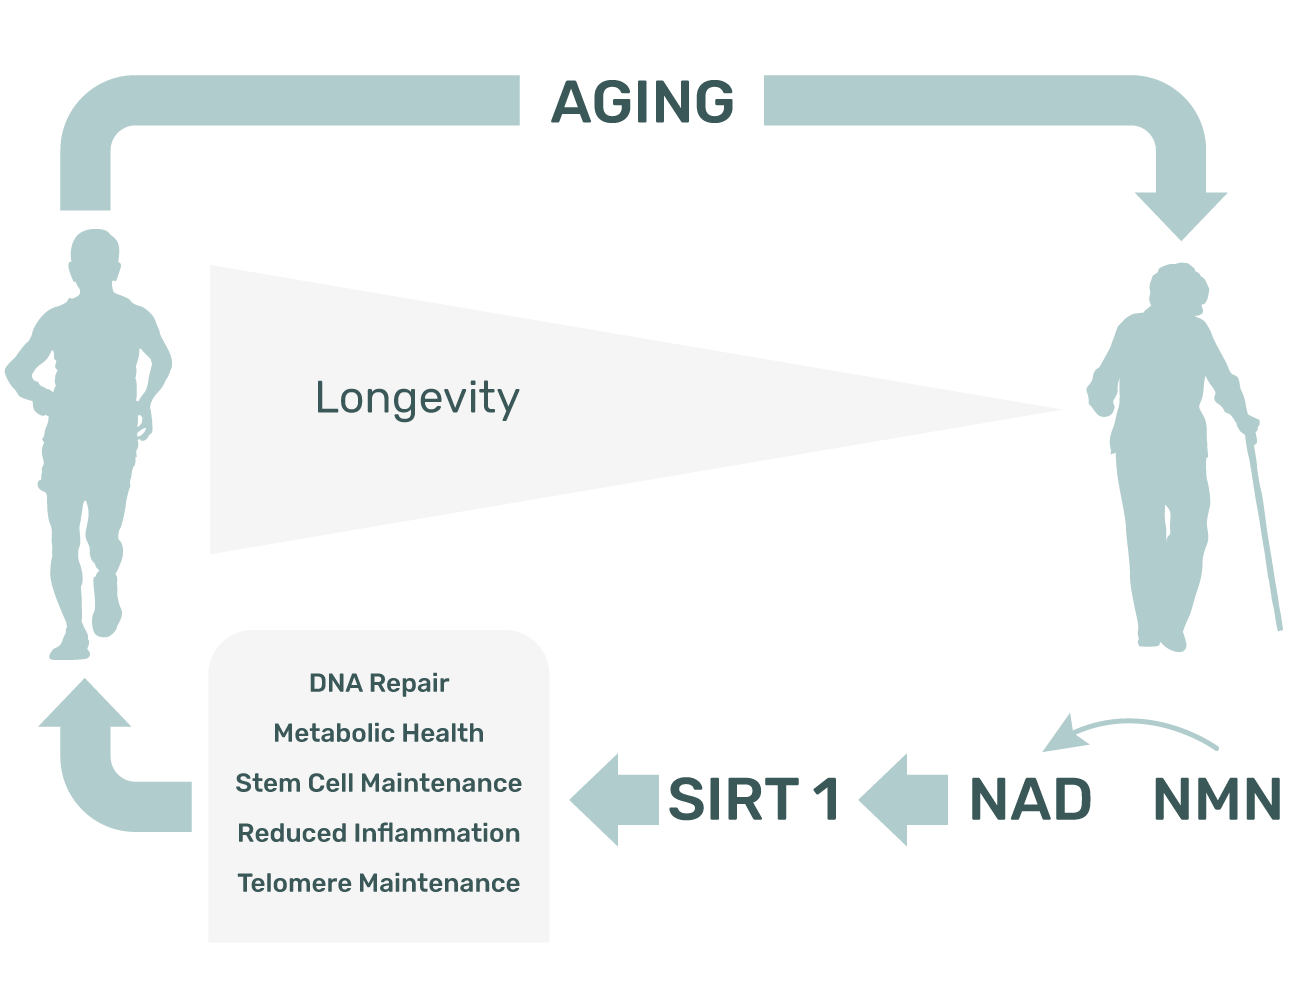 supplementation with NMN can increase lifespan, decrease and age-related frailty